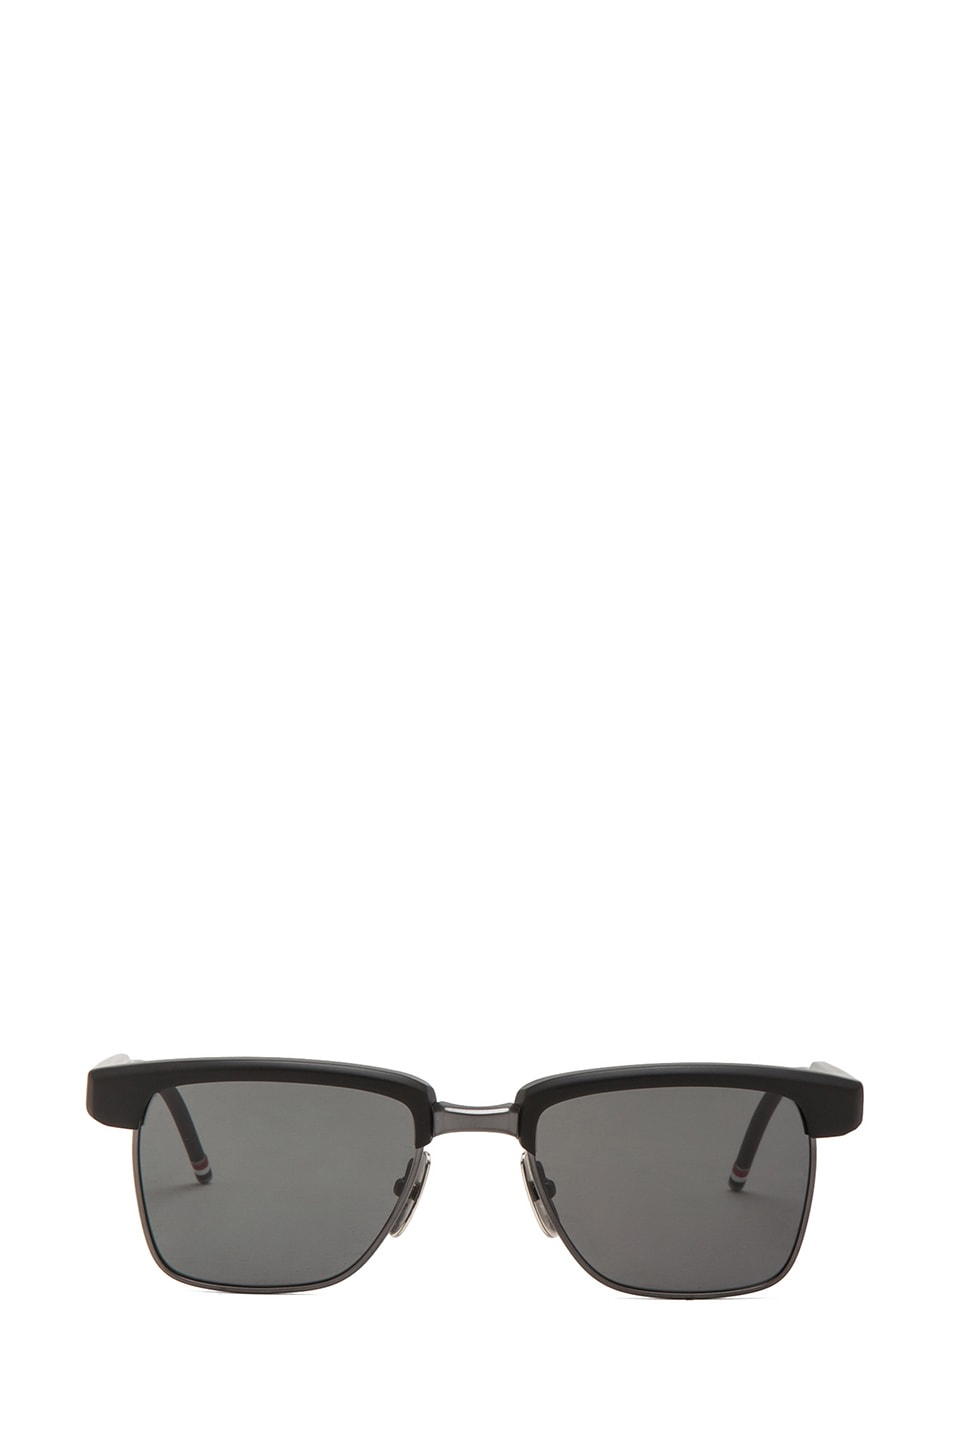 Image 1 of Thom Browne Half Rimmed Sunglasses in Matte Black